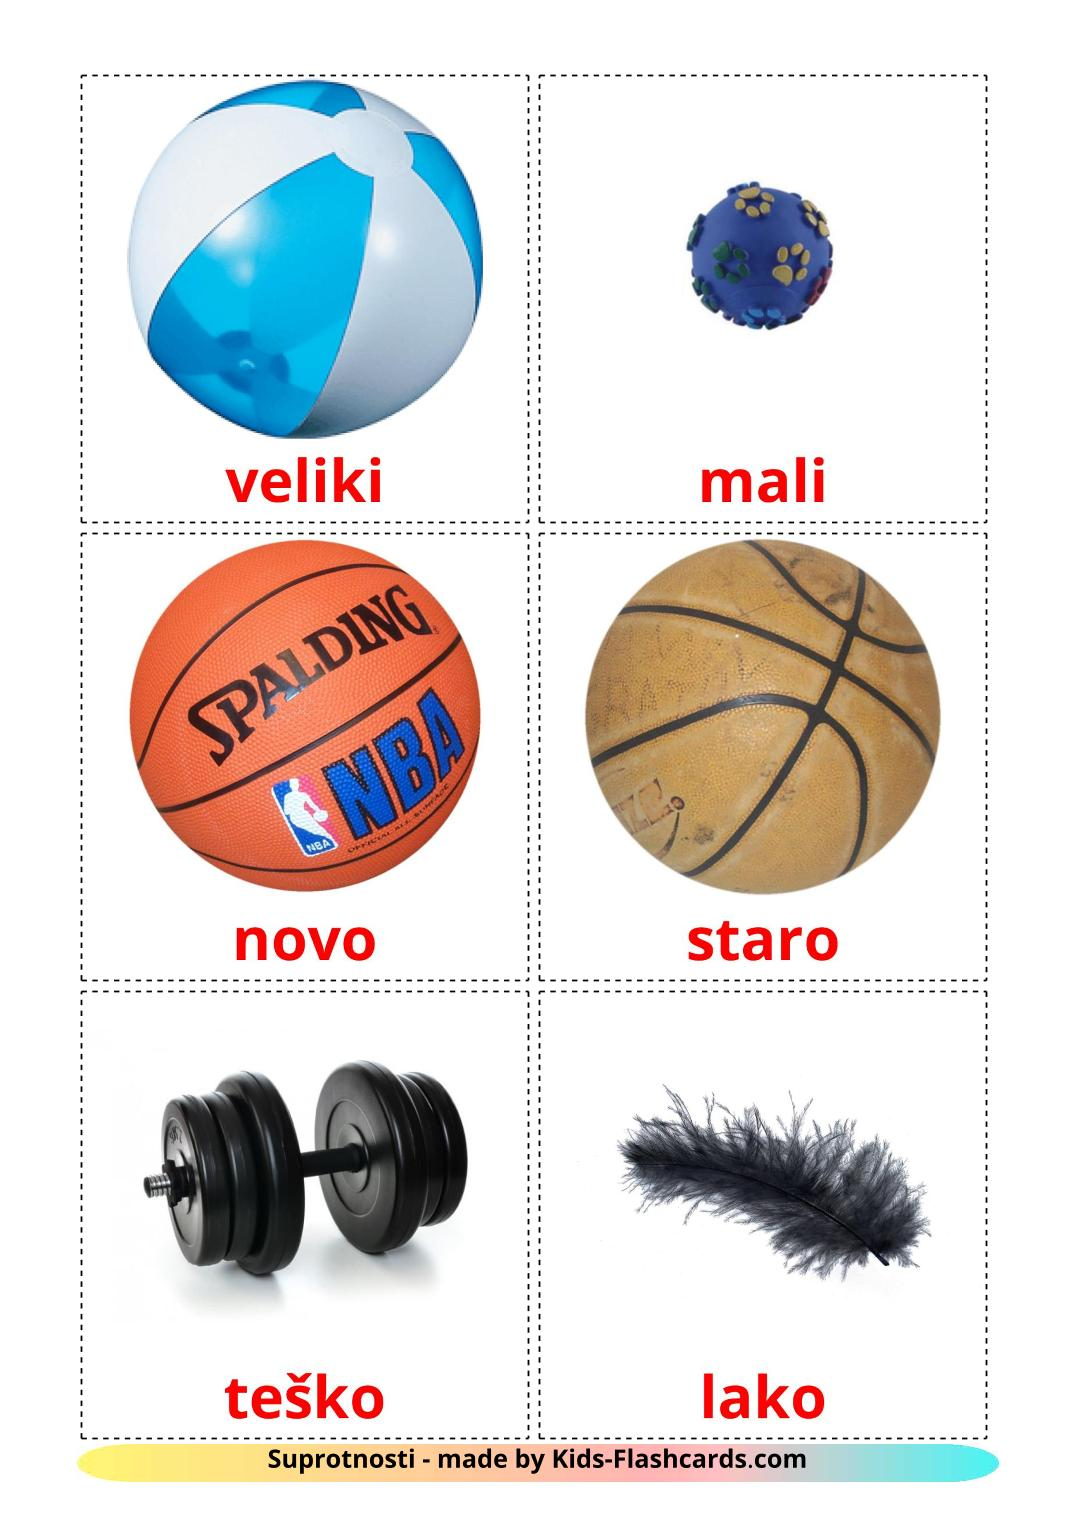 Opposites - 74 Free Printable serbian Flashcards